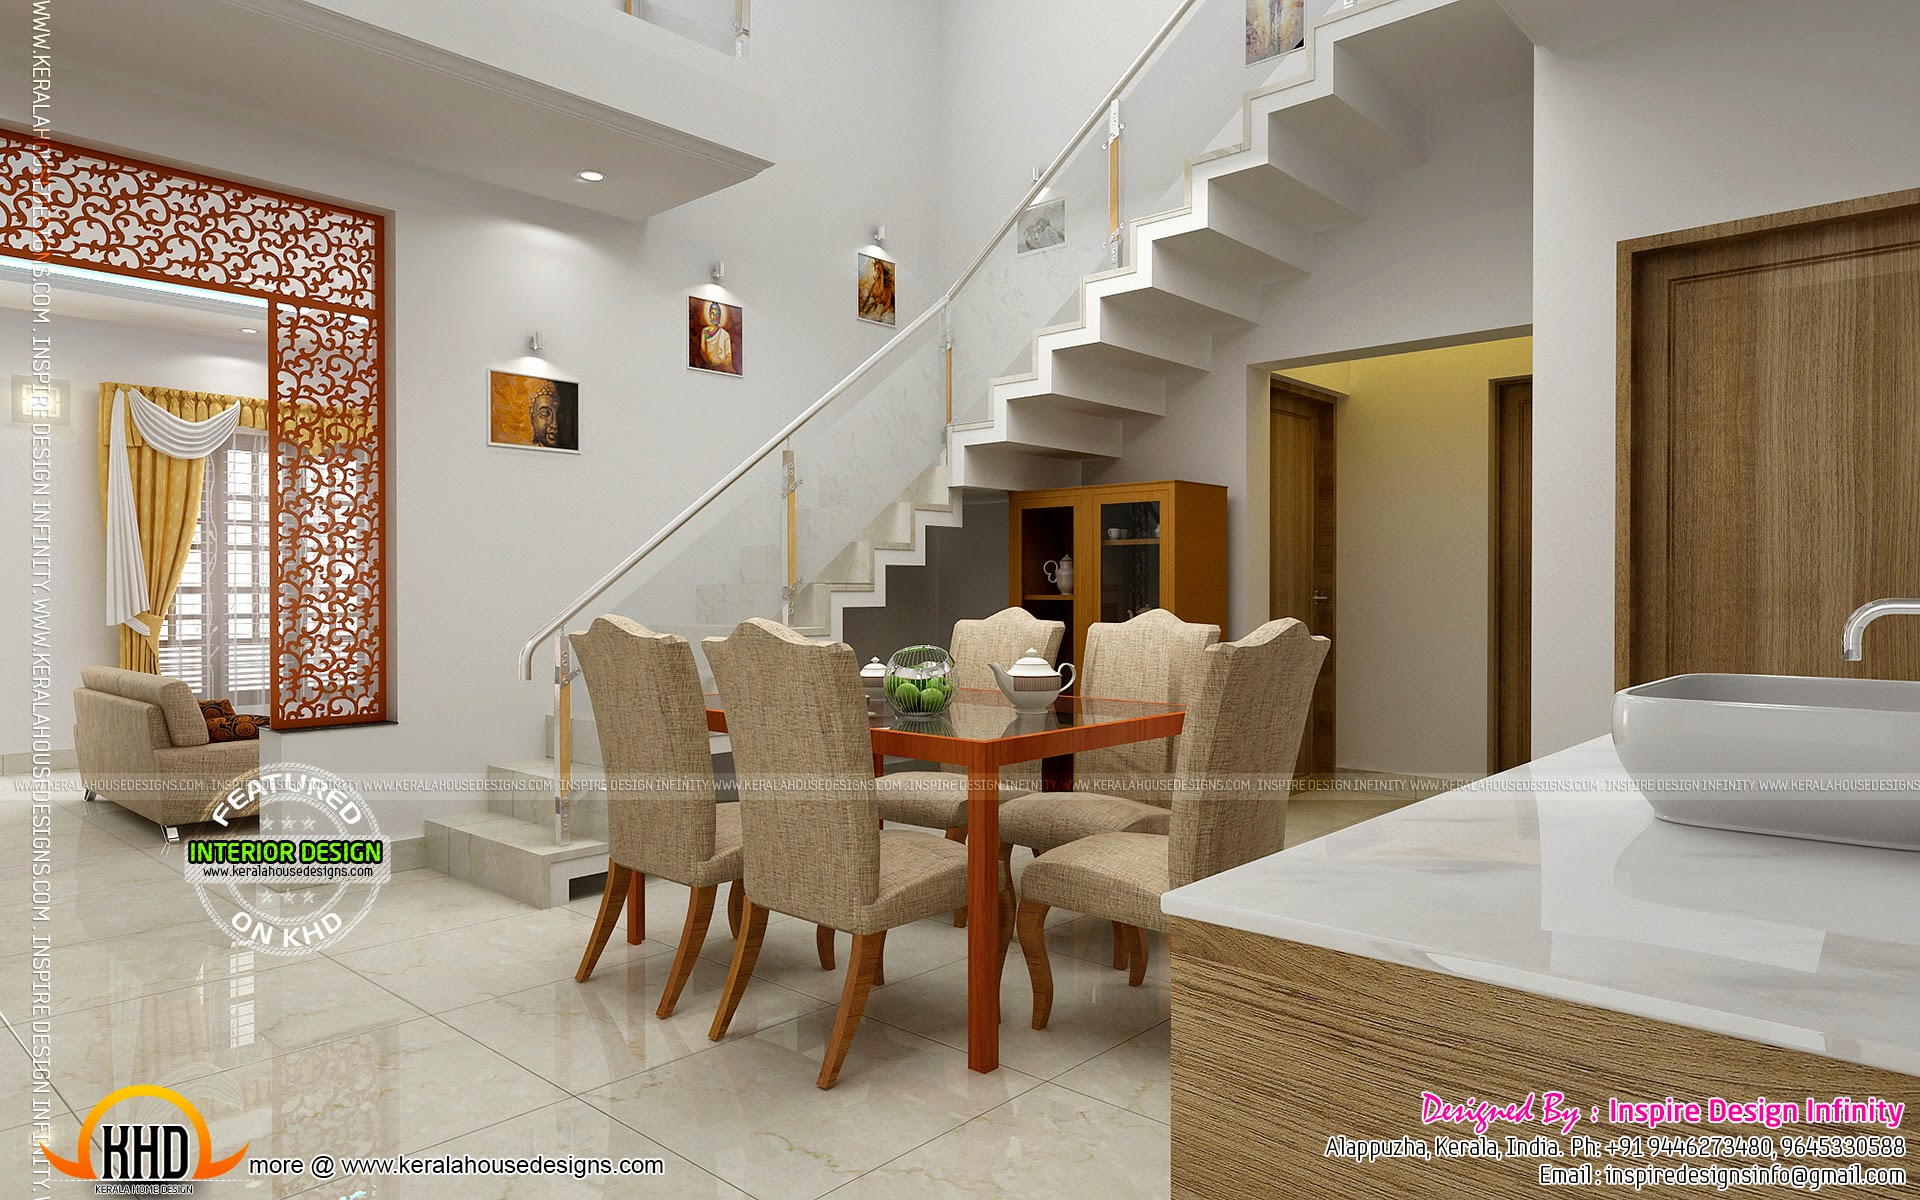 Dining room designs kerala home design and floor plans for Dining home design